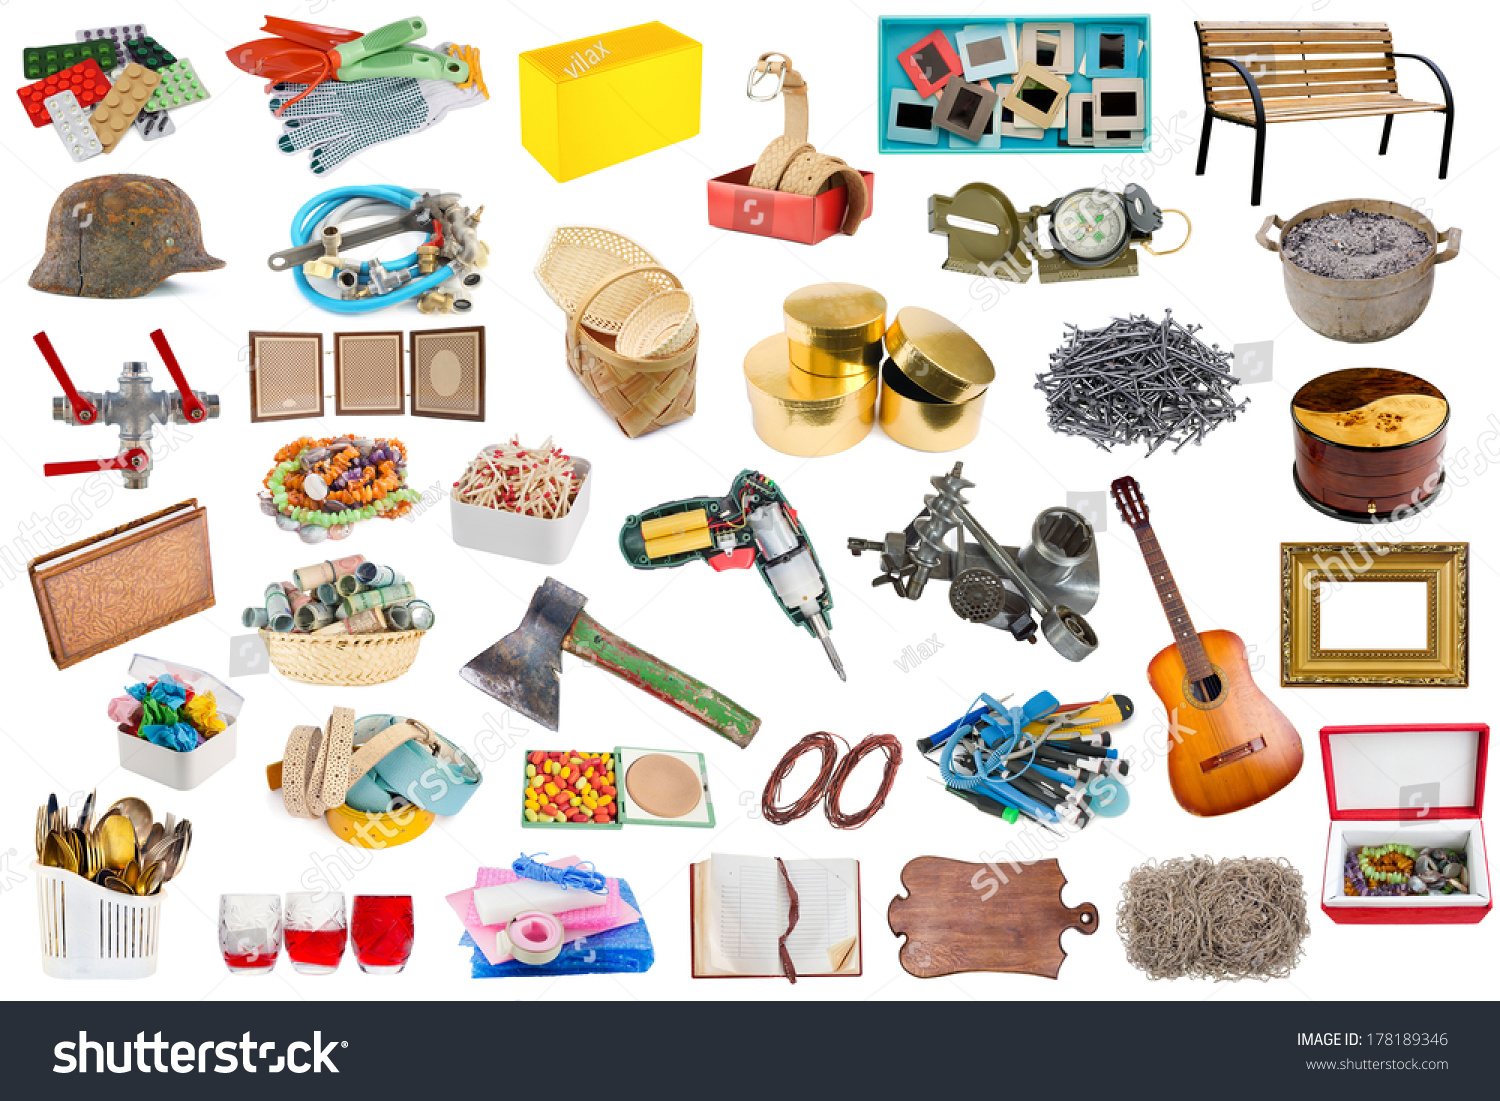 Simple common household objects tools isolated stock photo for Other uses for household items